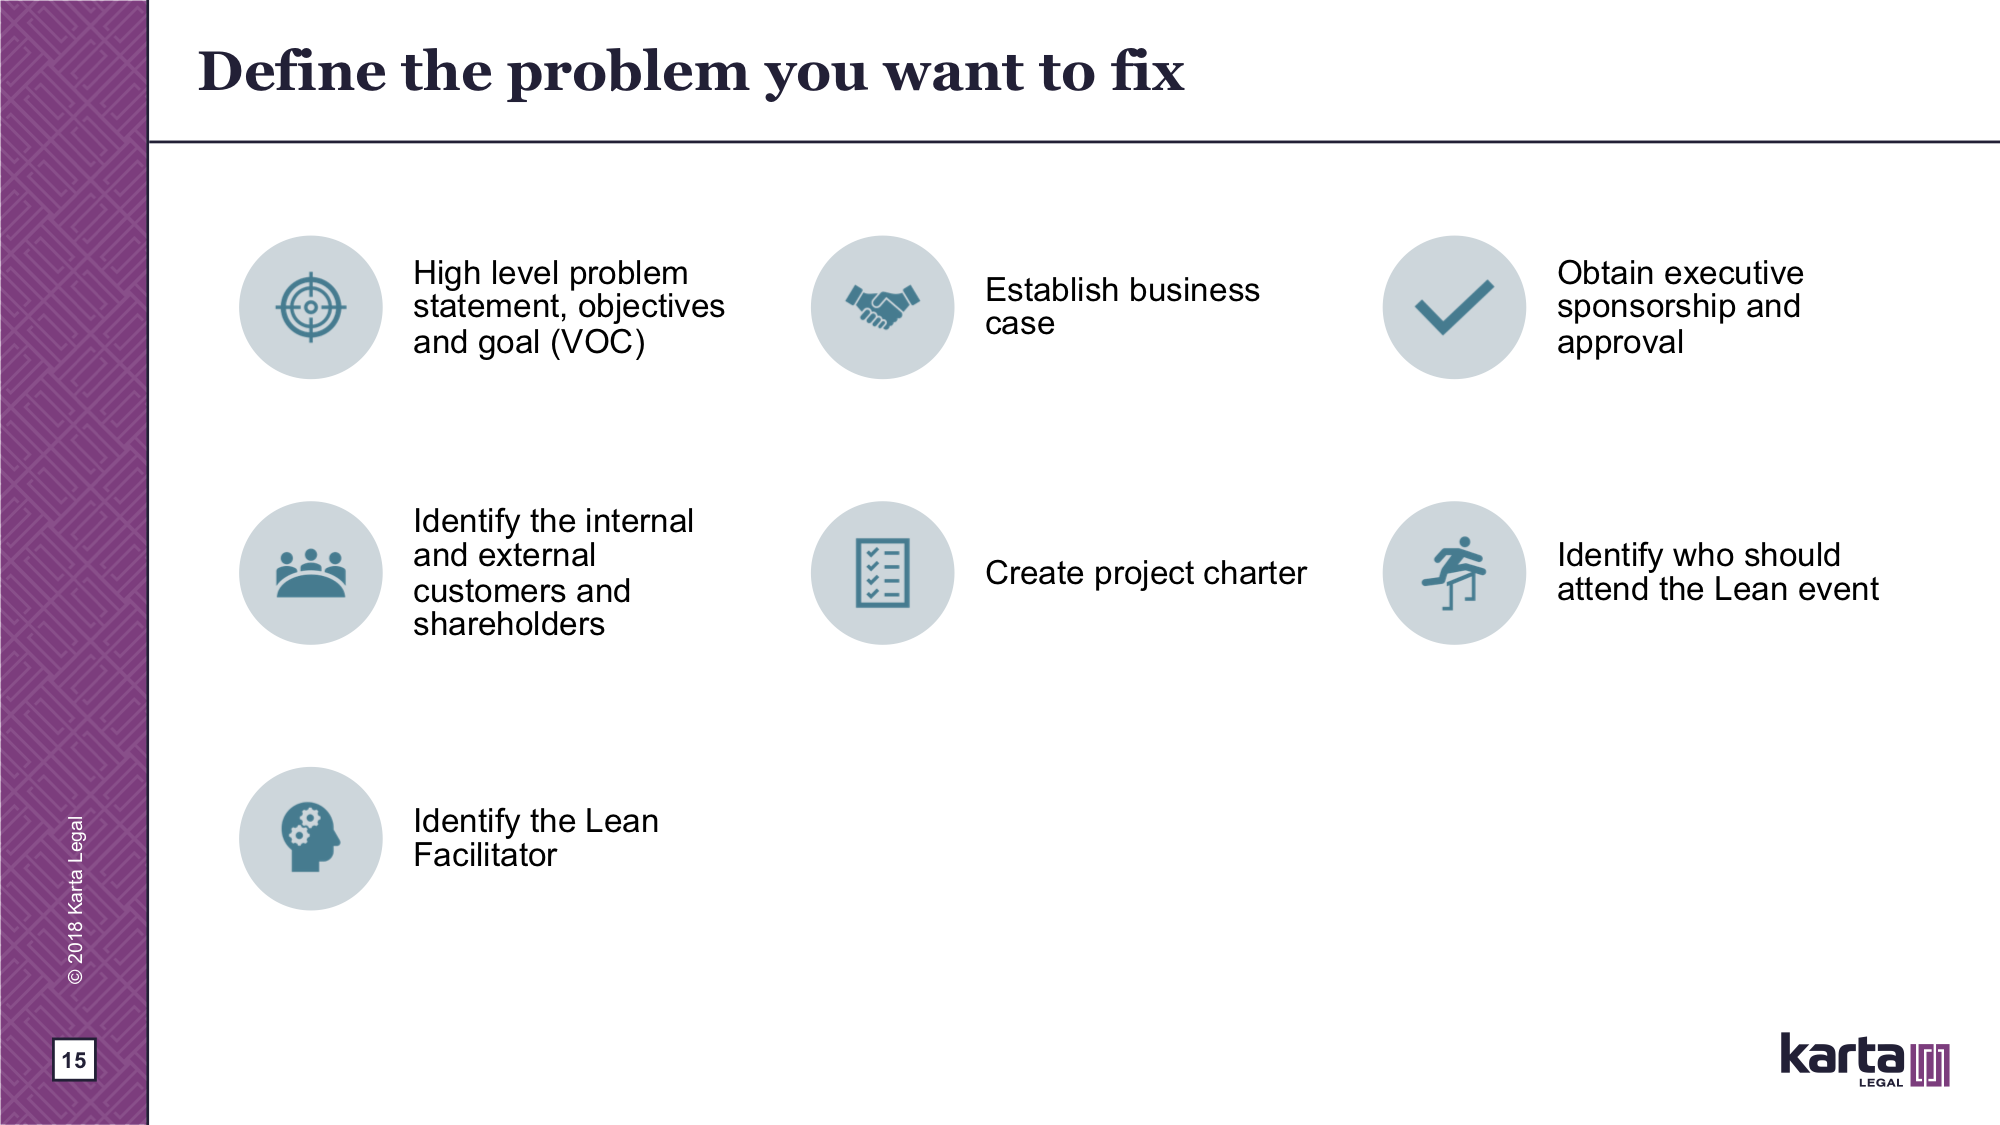 What problems you want to fix